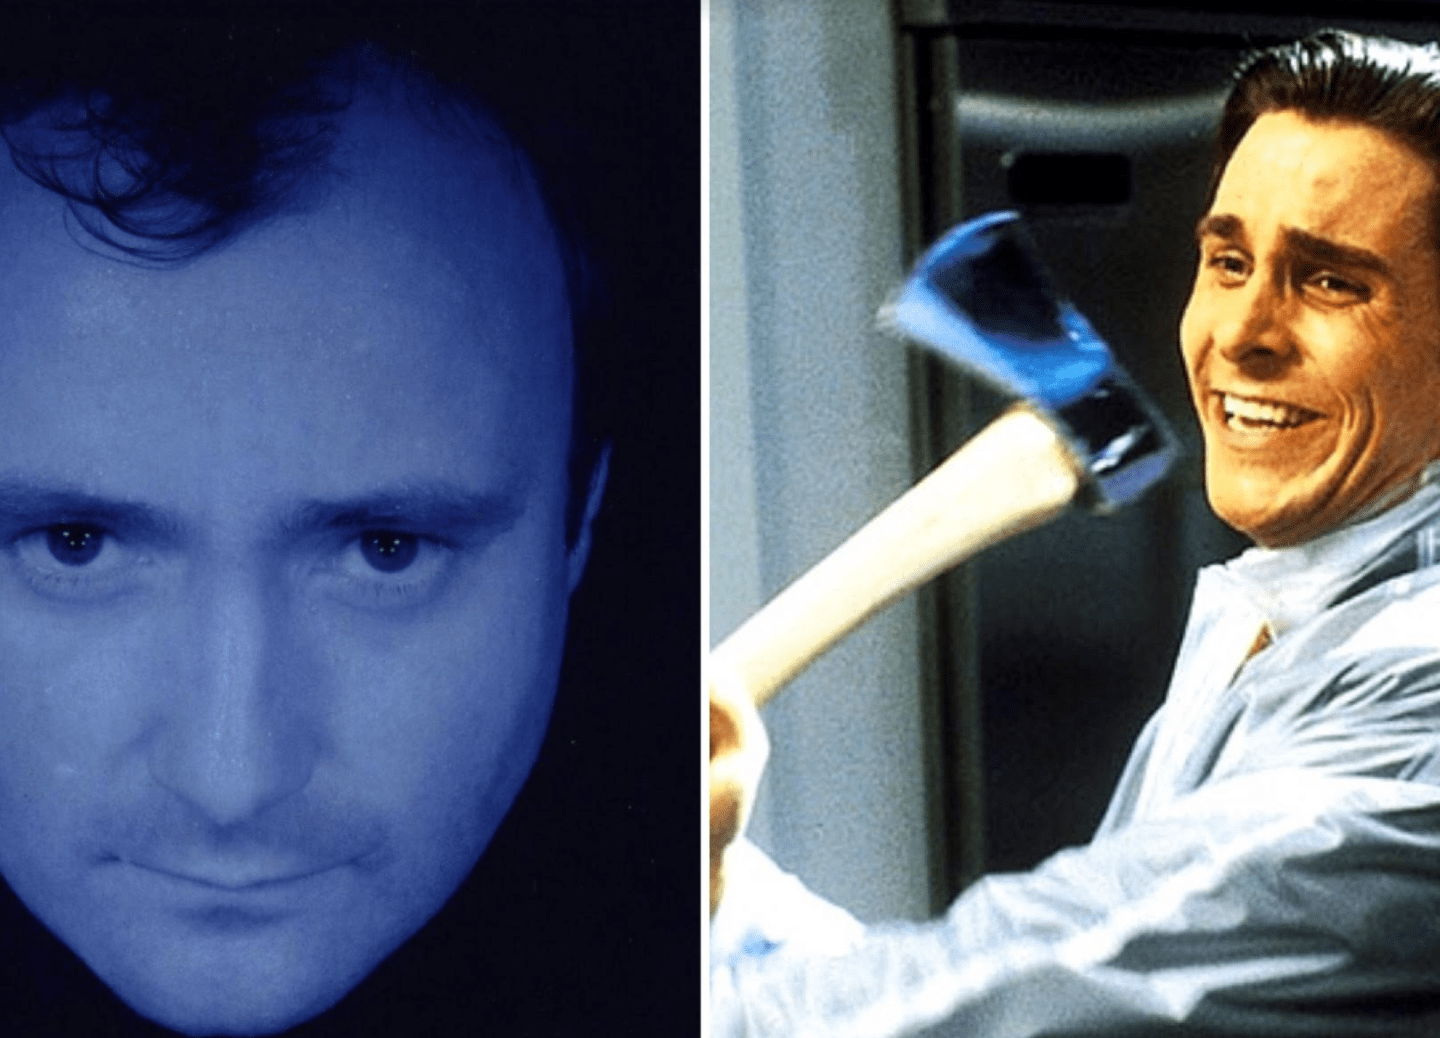 Patrick Bateman's Take on the Hospitalization of Phil Collins